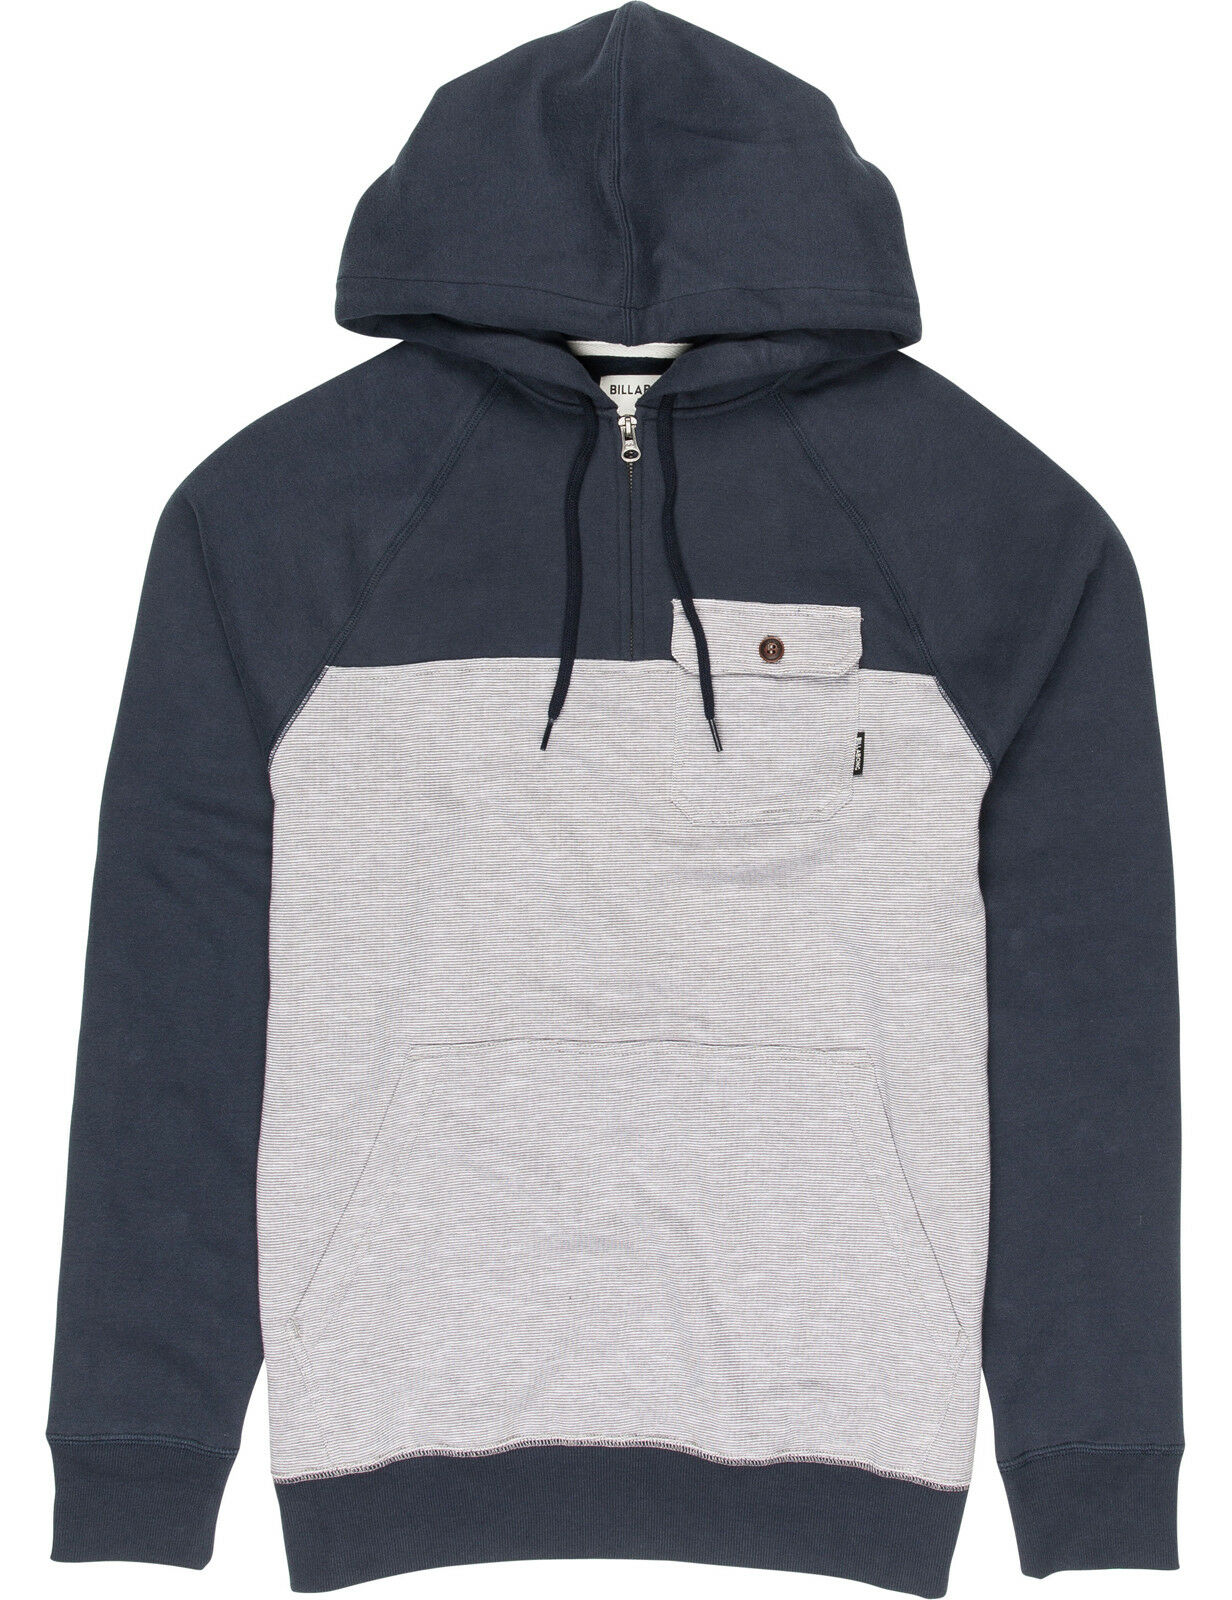 Billabong Balance Half Zip Pullover Hoody in Navy